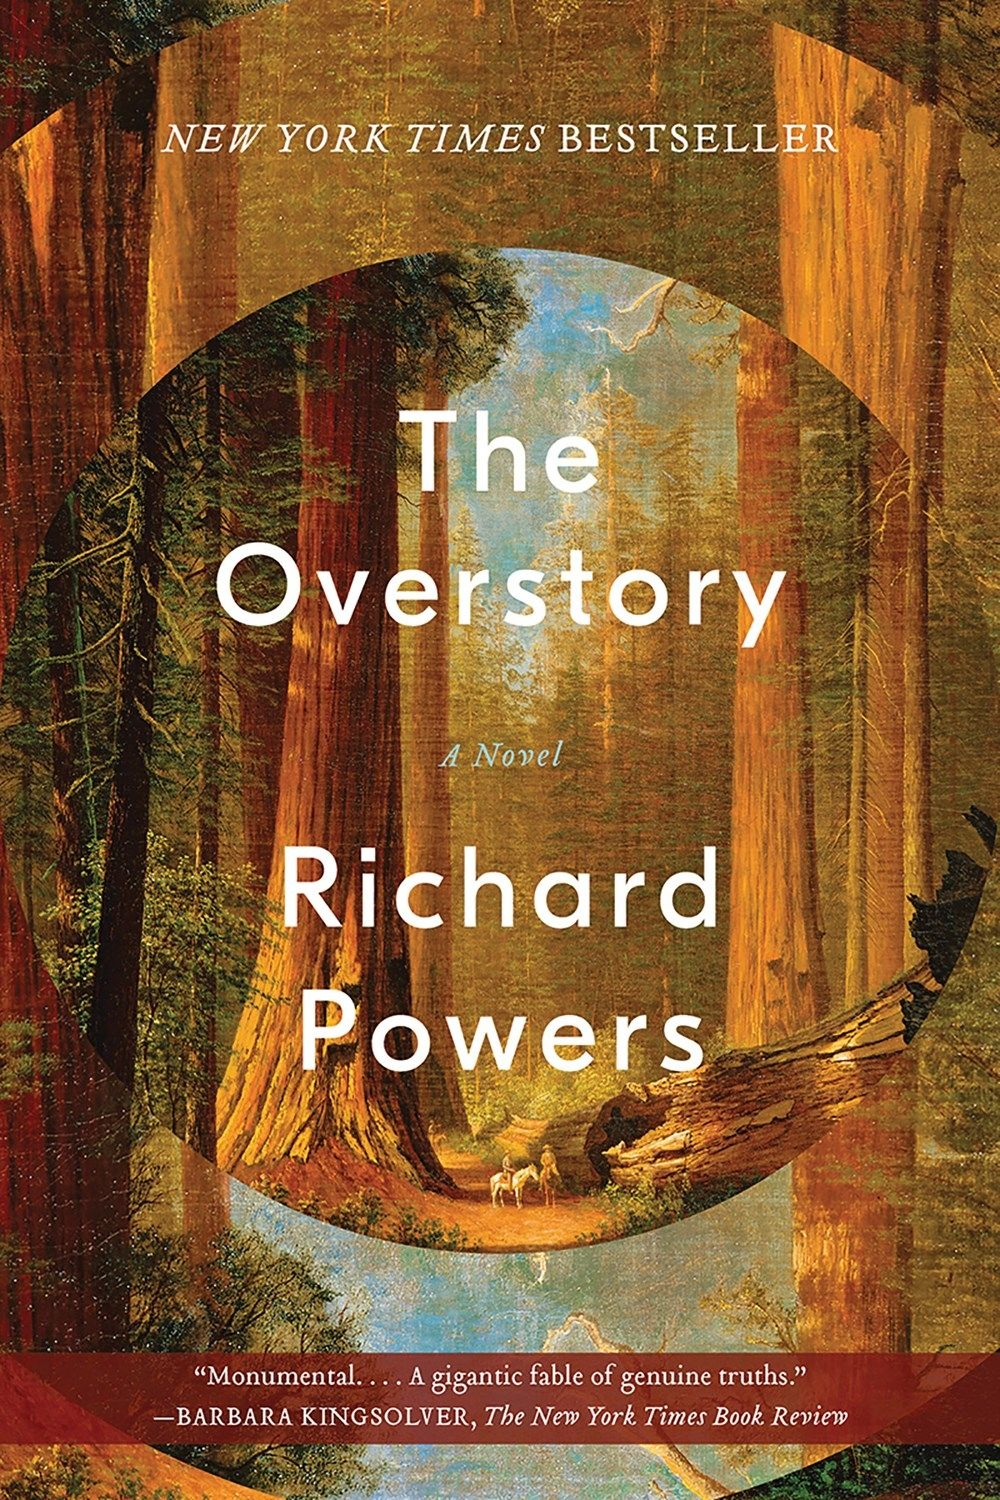 The Overstory. Pulitzer Prize for Fiction 2019